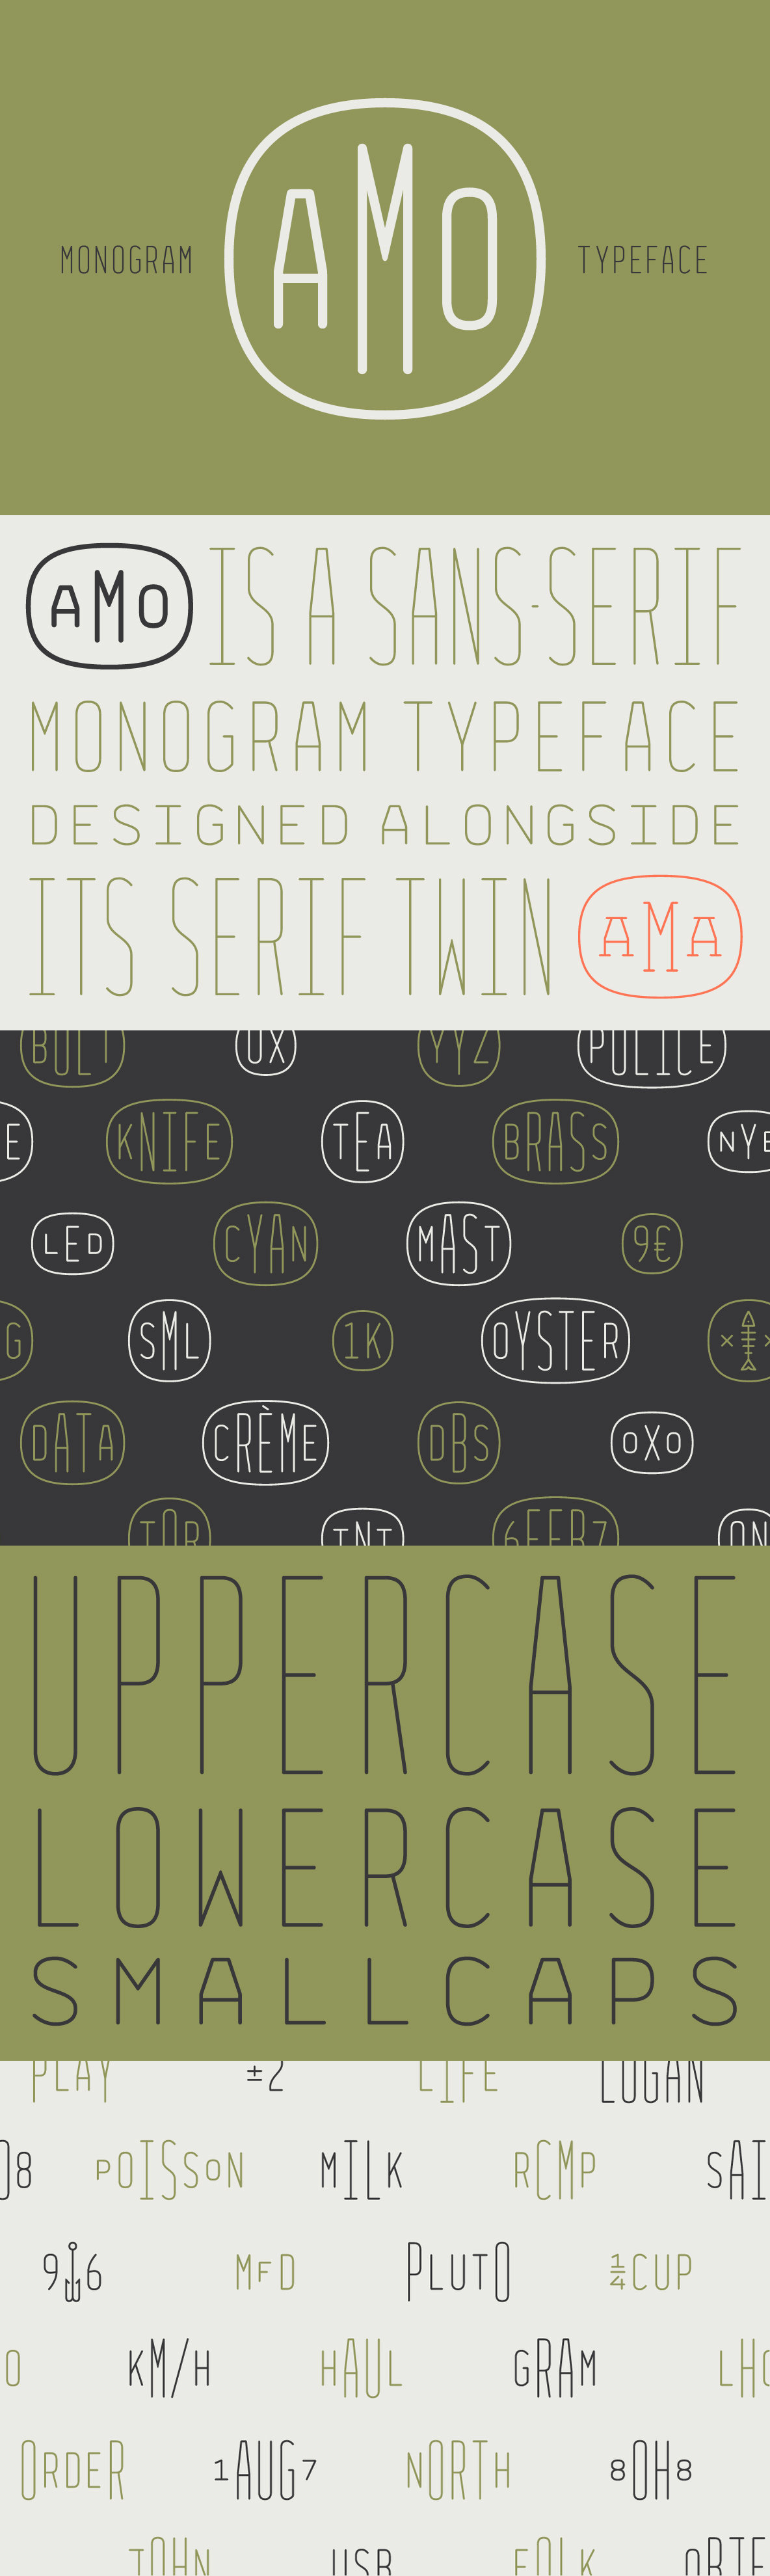 Amo - Amo is a monospaced sans-serif typeface designed for creating monograms and rounded badges.